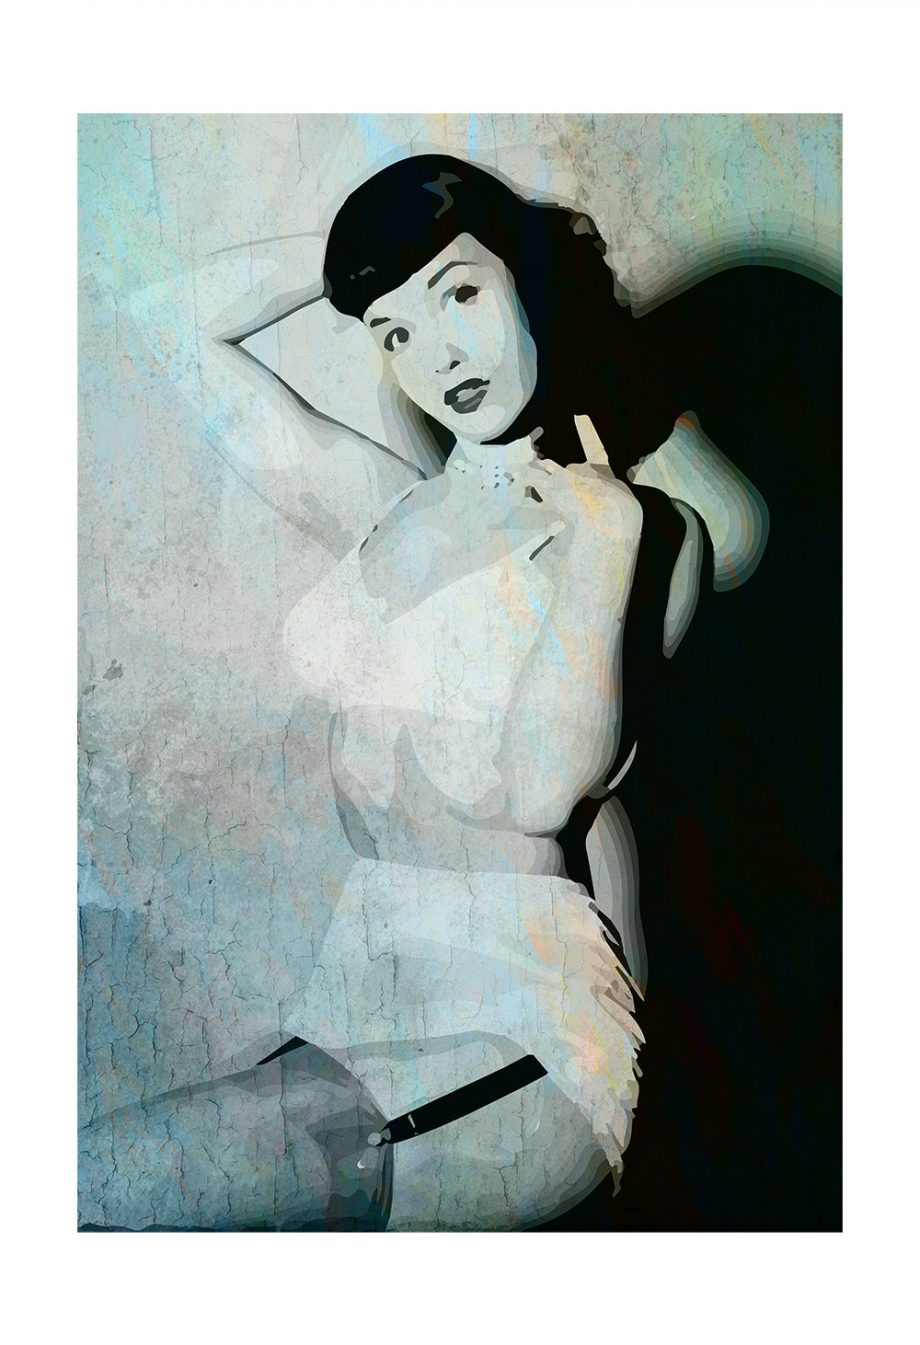 Bettie Page Retro Pin up Illustration Art Print Vintage Giclee on Cotton Canvas and Paper Canvas Poster Wall Decor